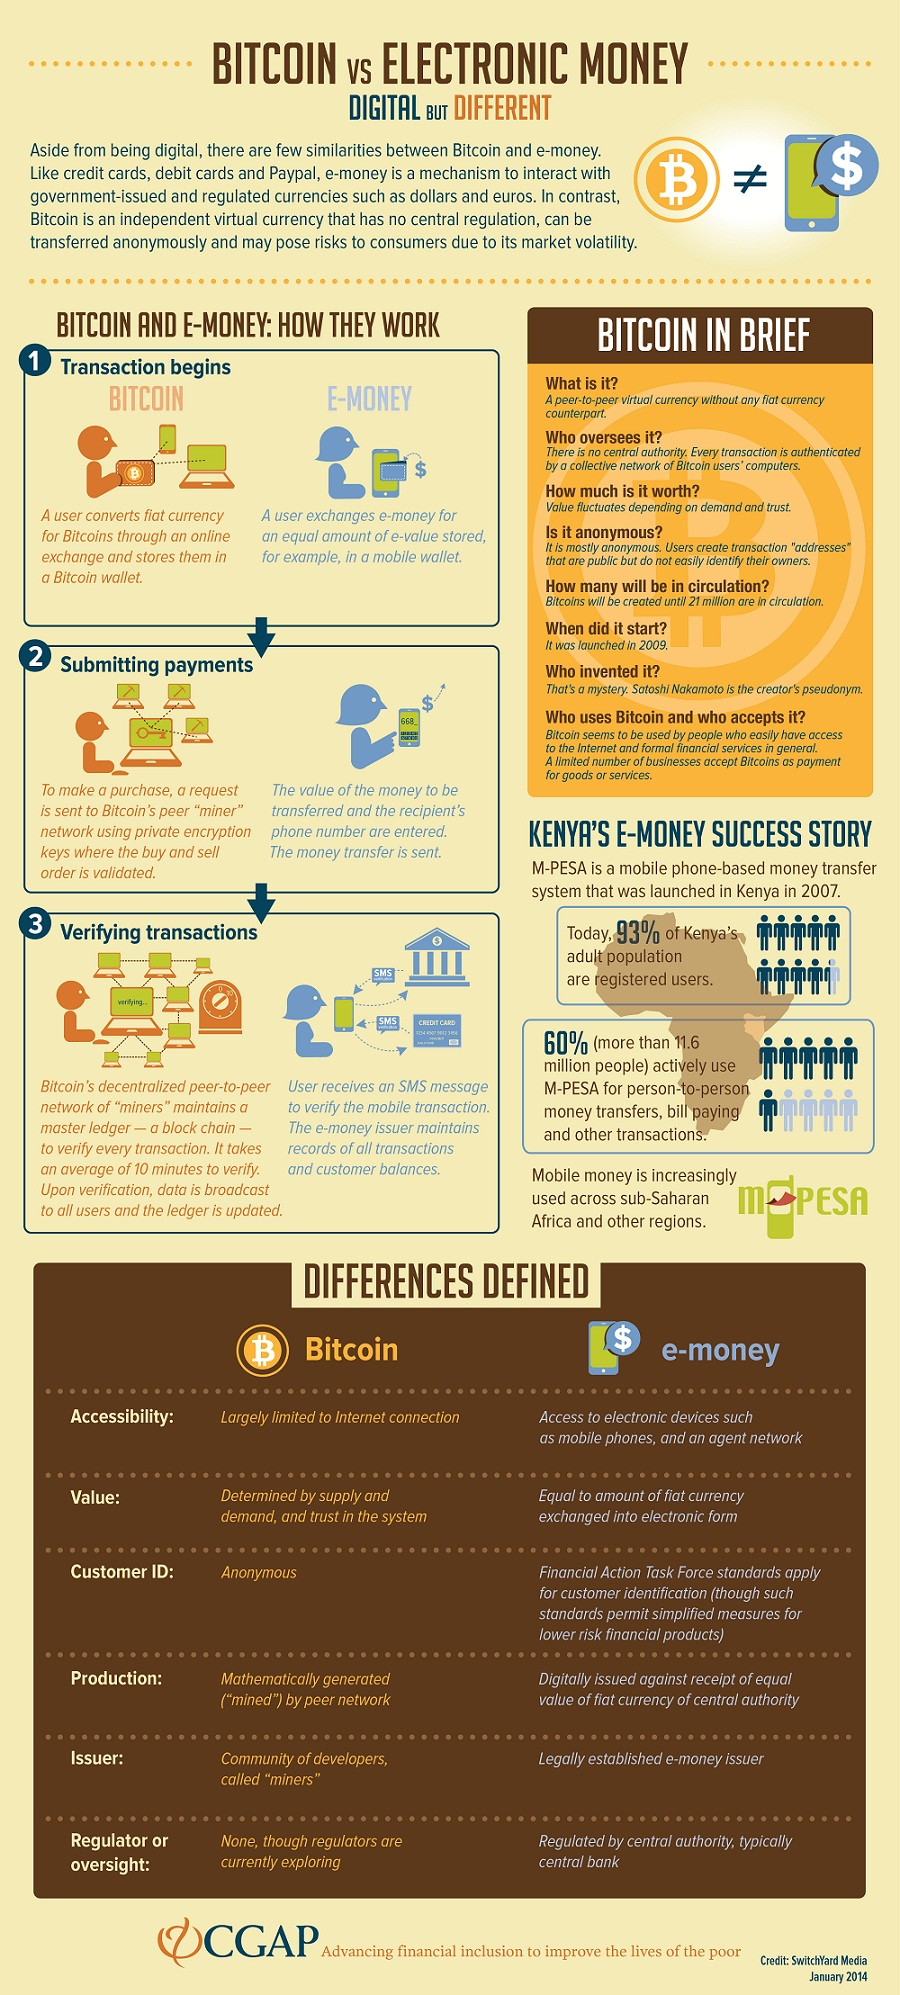 Explained The Differences Between Electronic Money And Bitcoin